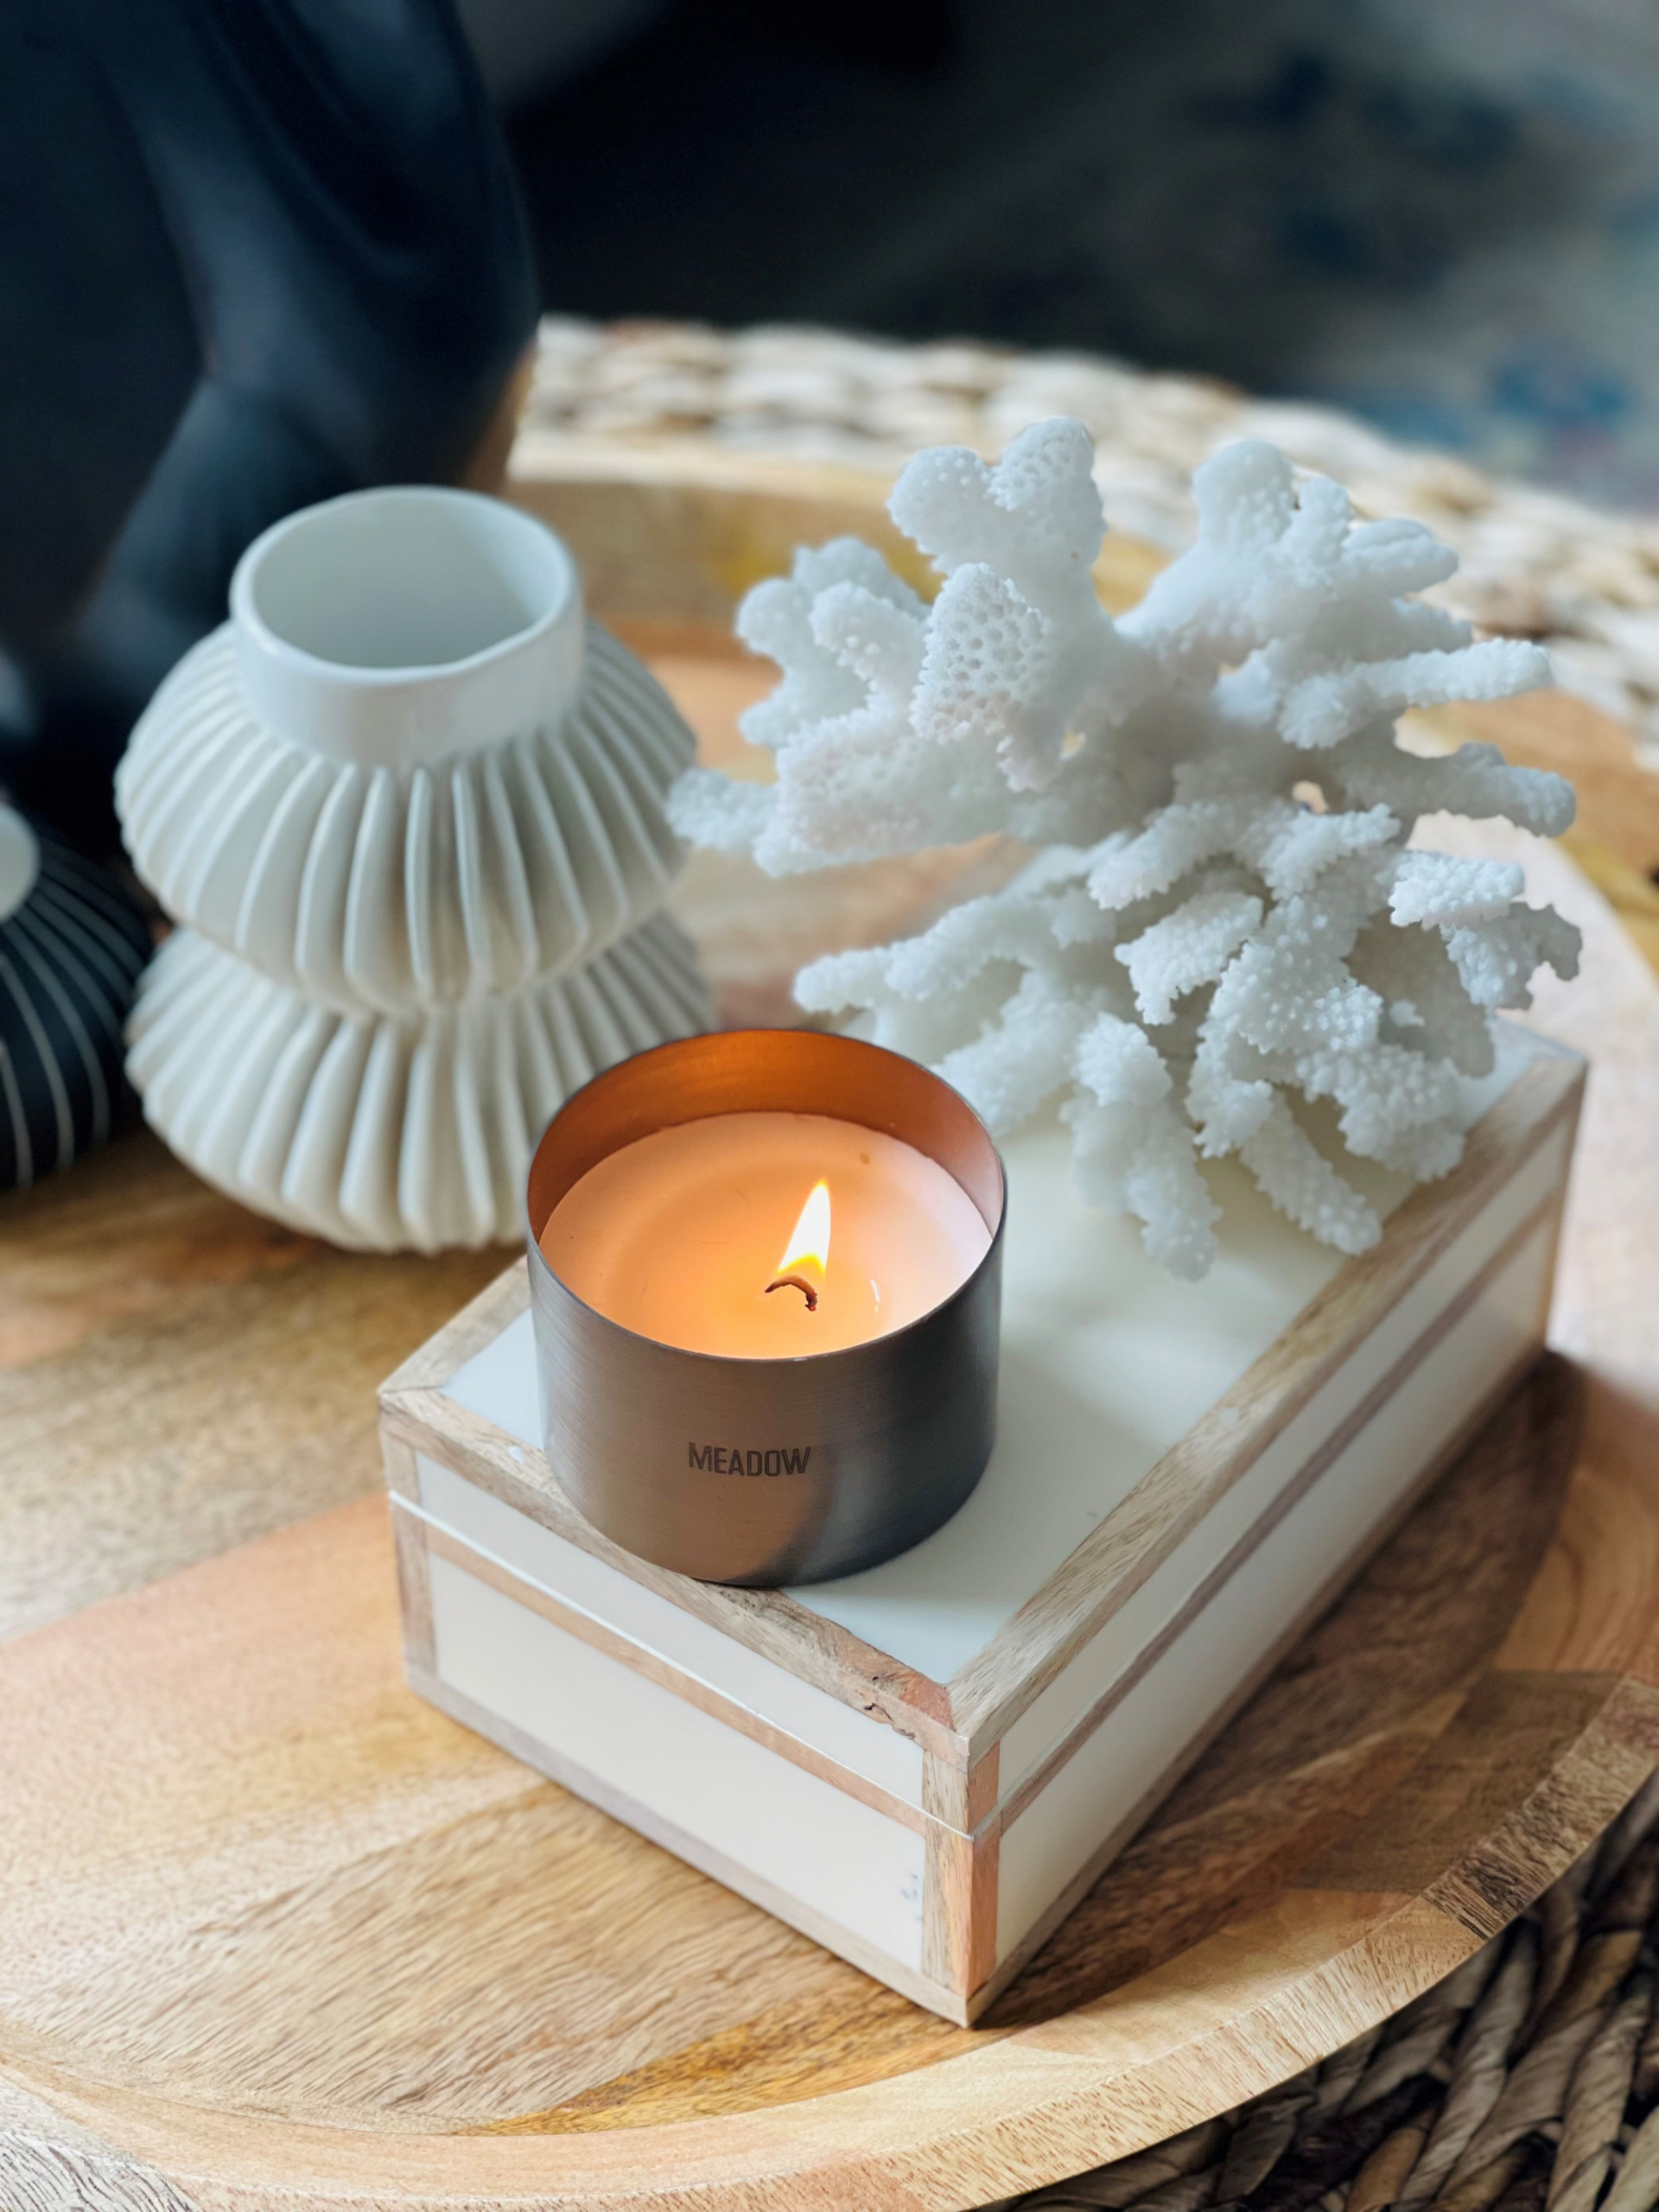 how to decorate your coffee table, style your coffee table with ease, 5 Sophisticated Ways to Style Your Coffee Table On A Budget